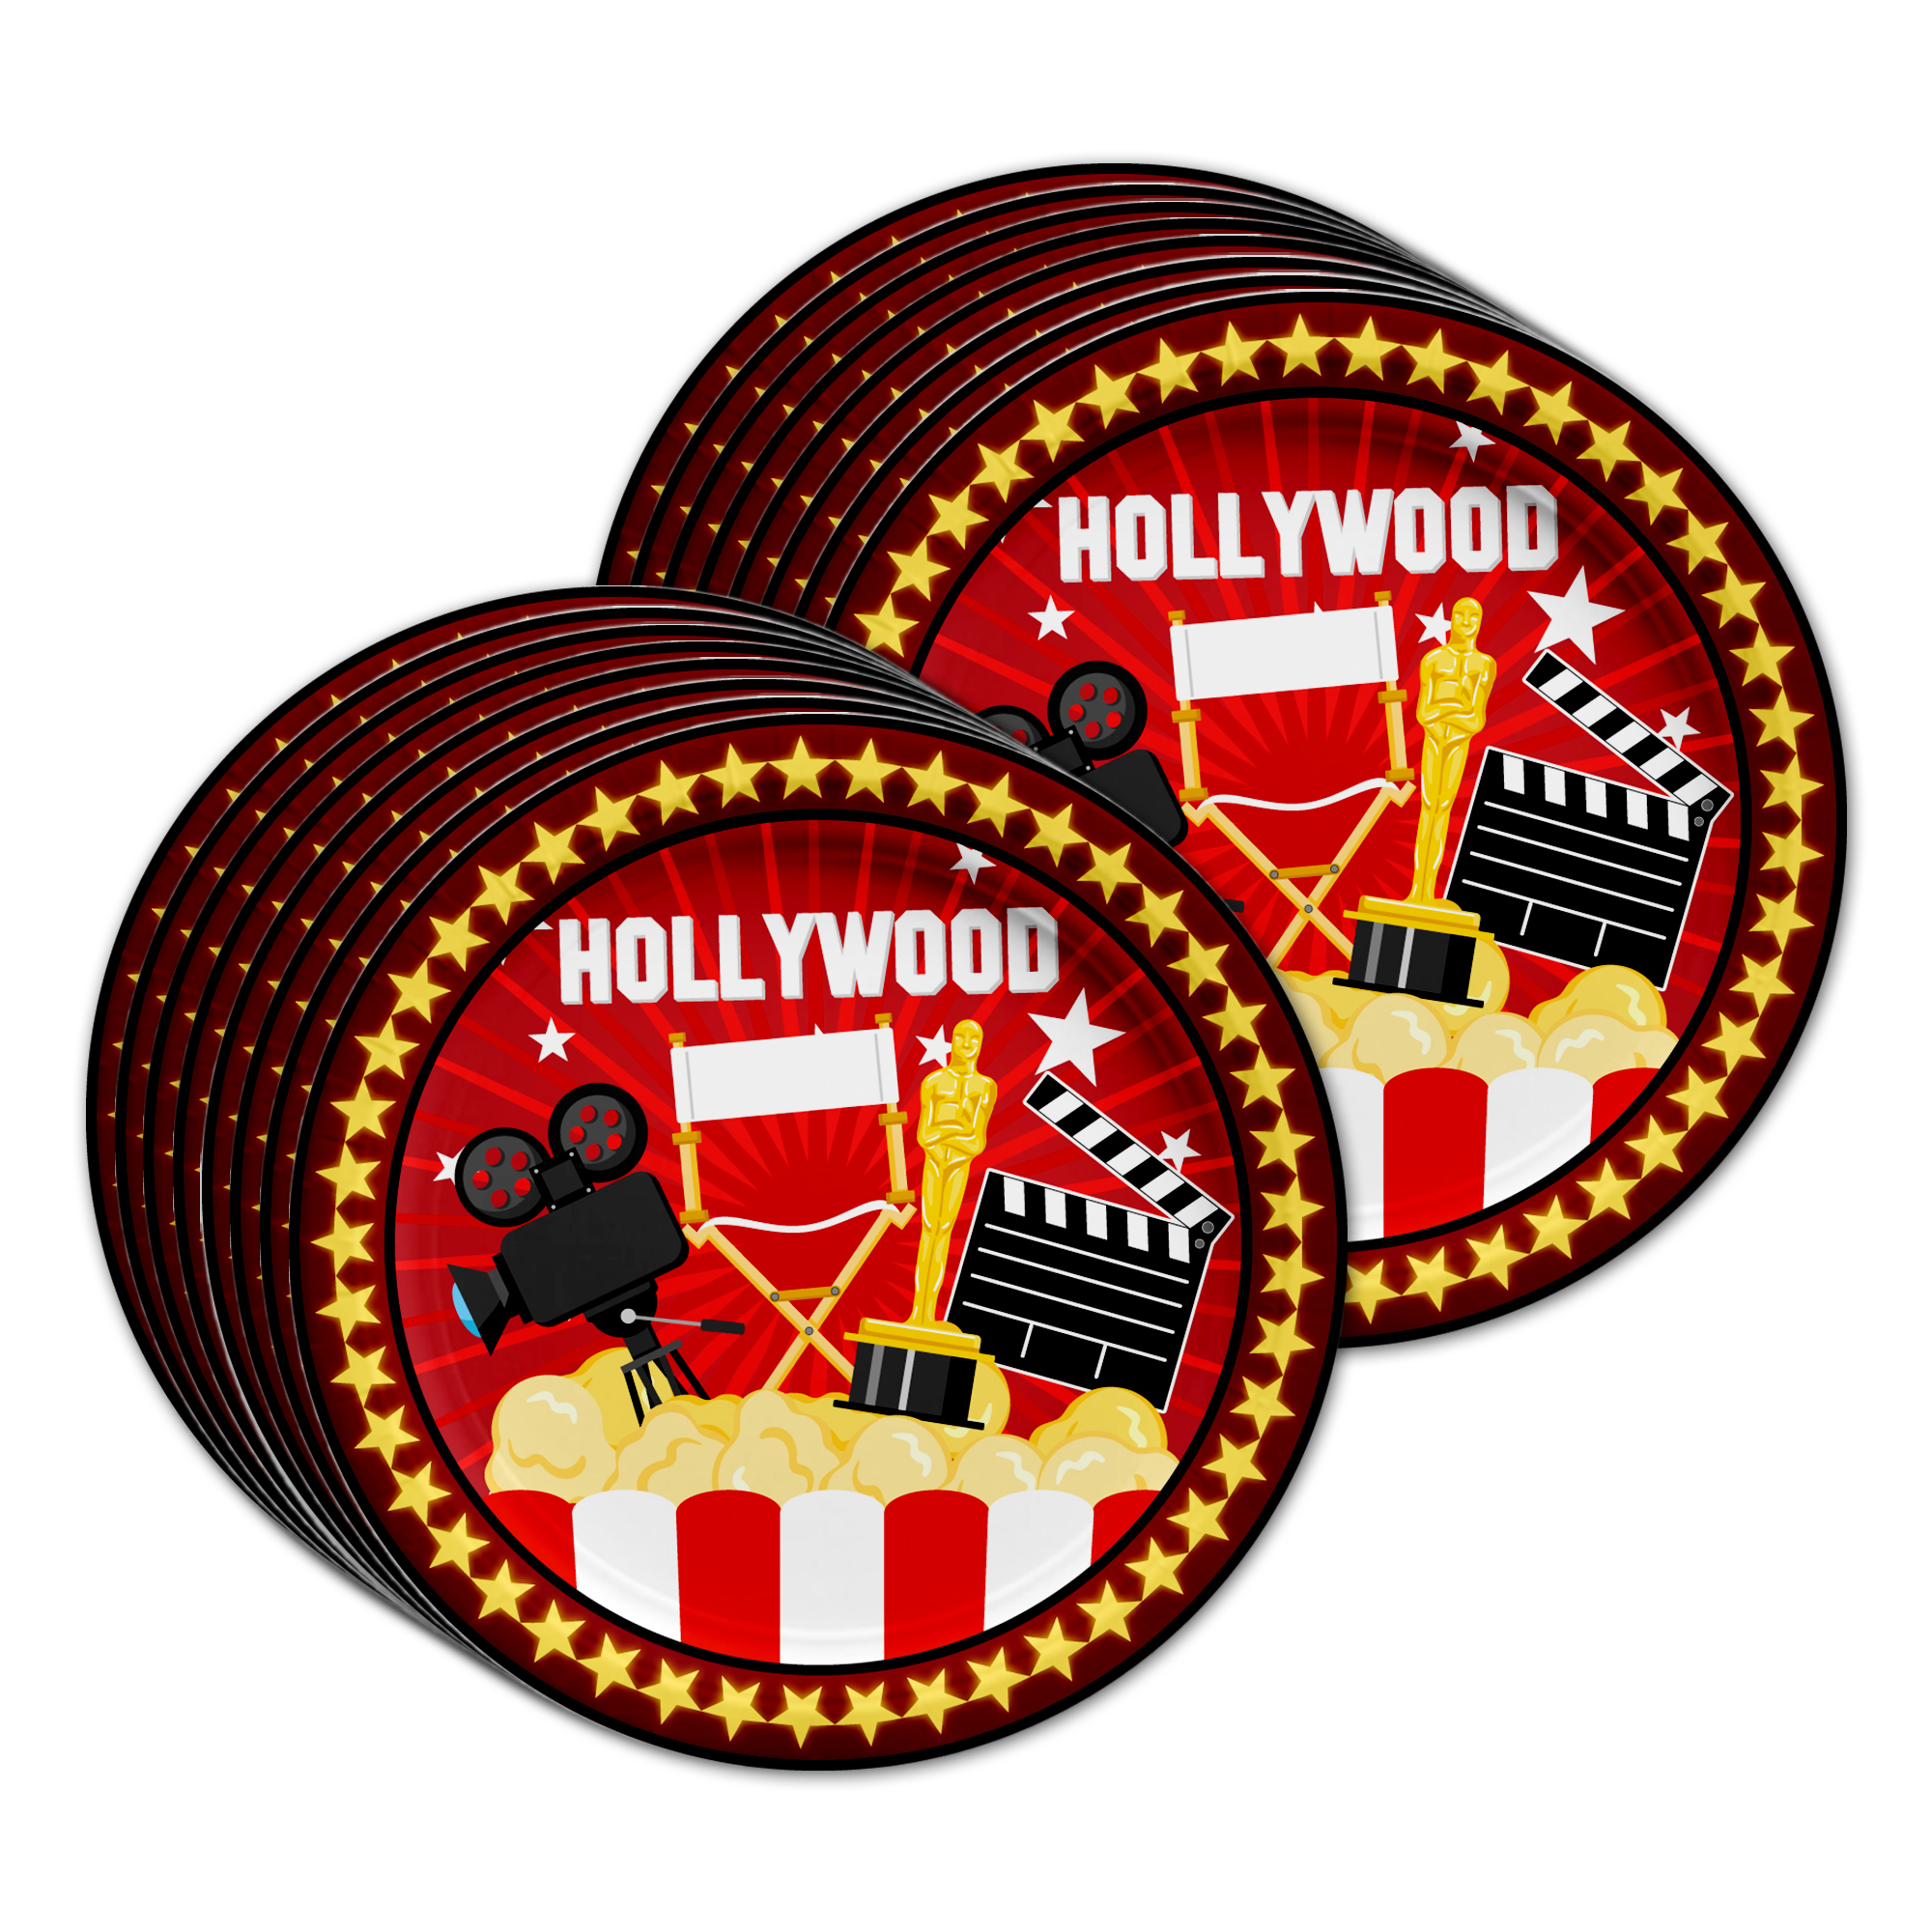 Hollywood Birthday Party Tableware Kit For 16 Guests - BirthdayGalore.com